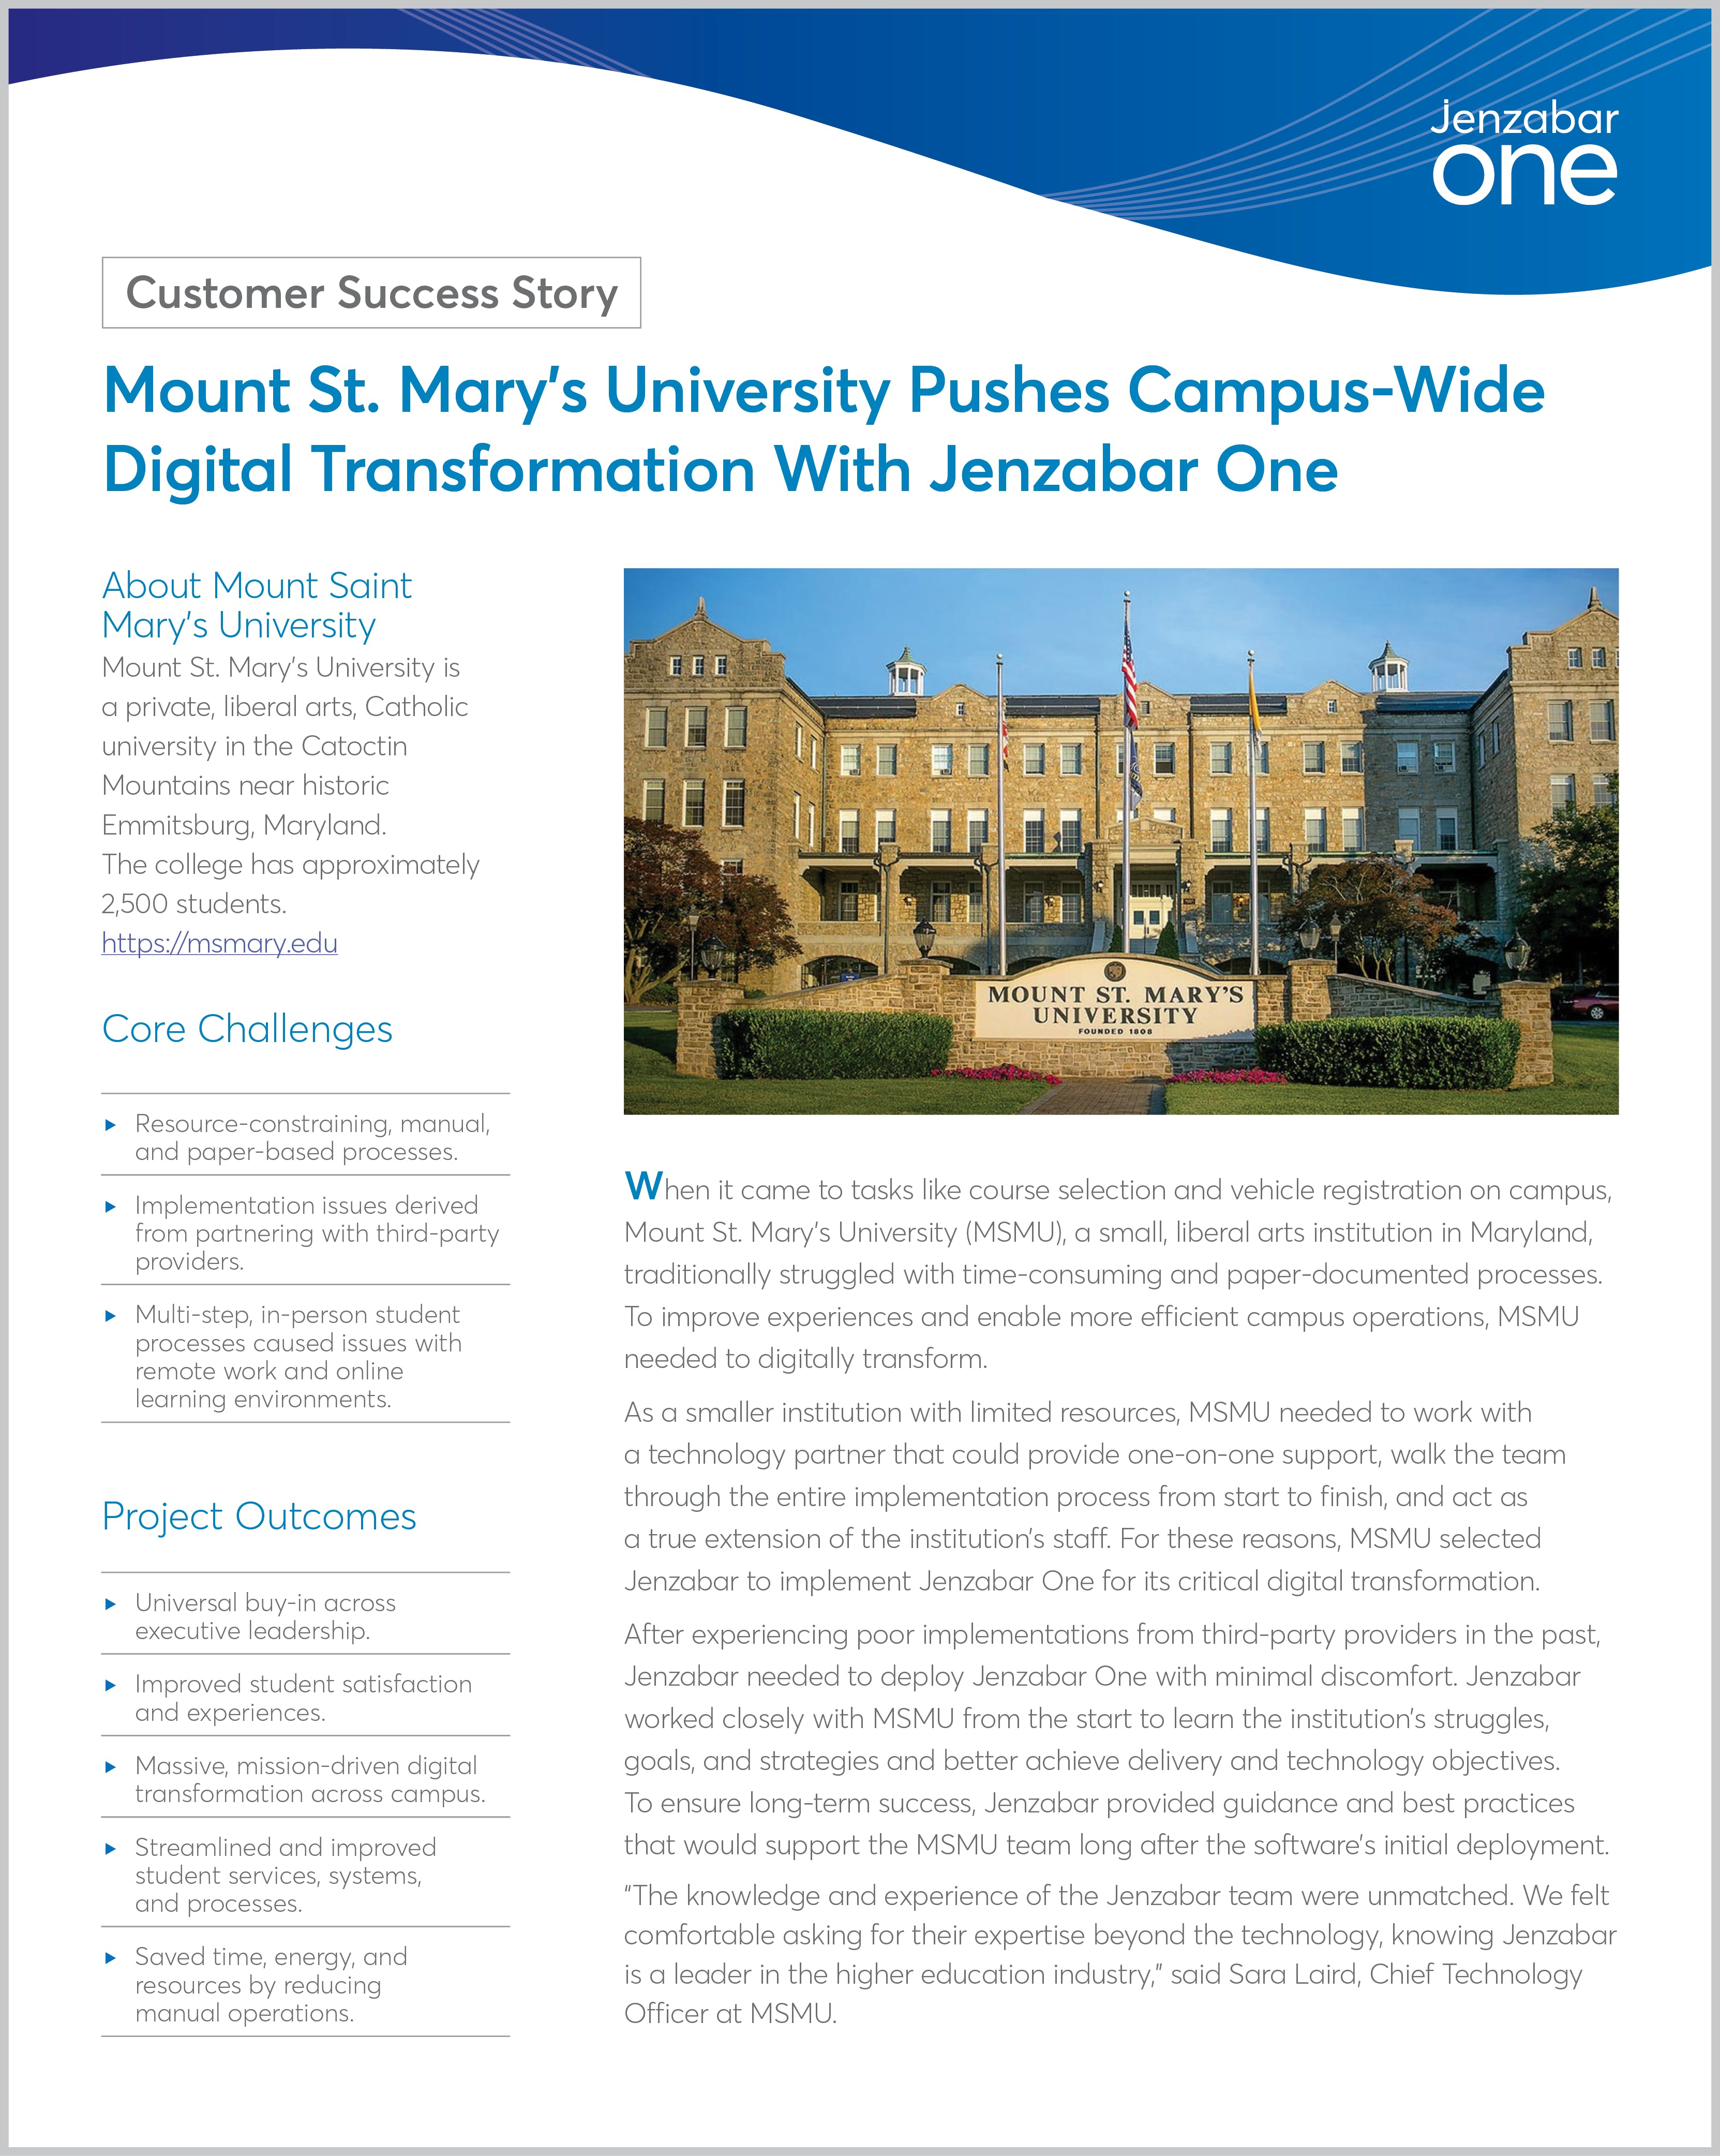 Mount St. Mary's University Pushes Campus-Wide Digital Transformation With Jenzabar One